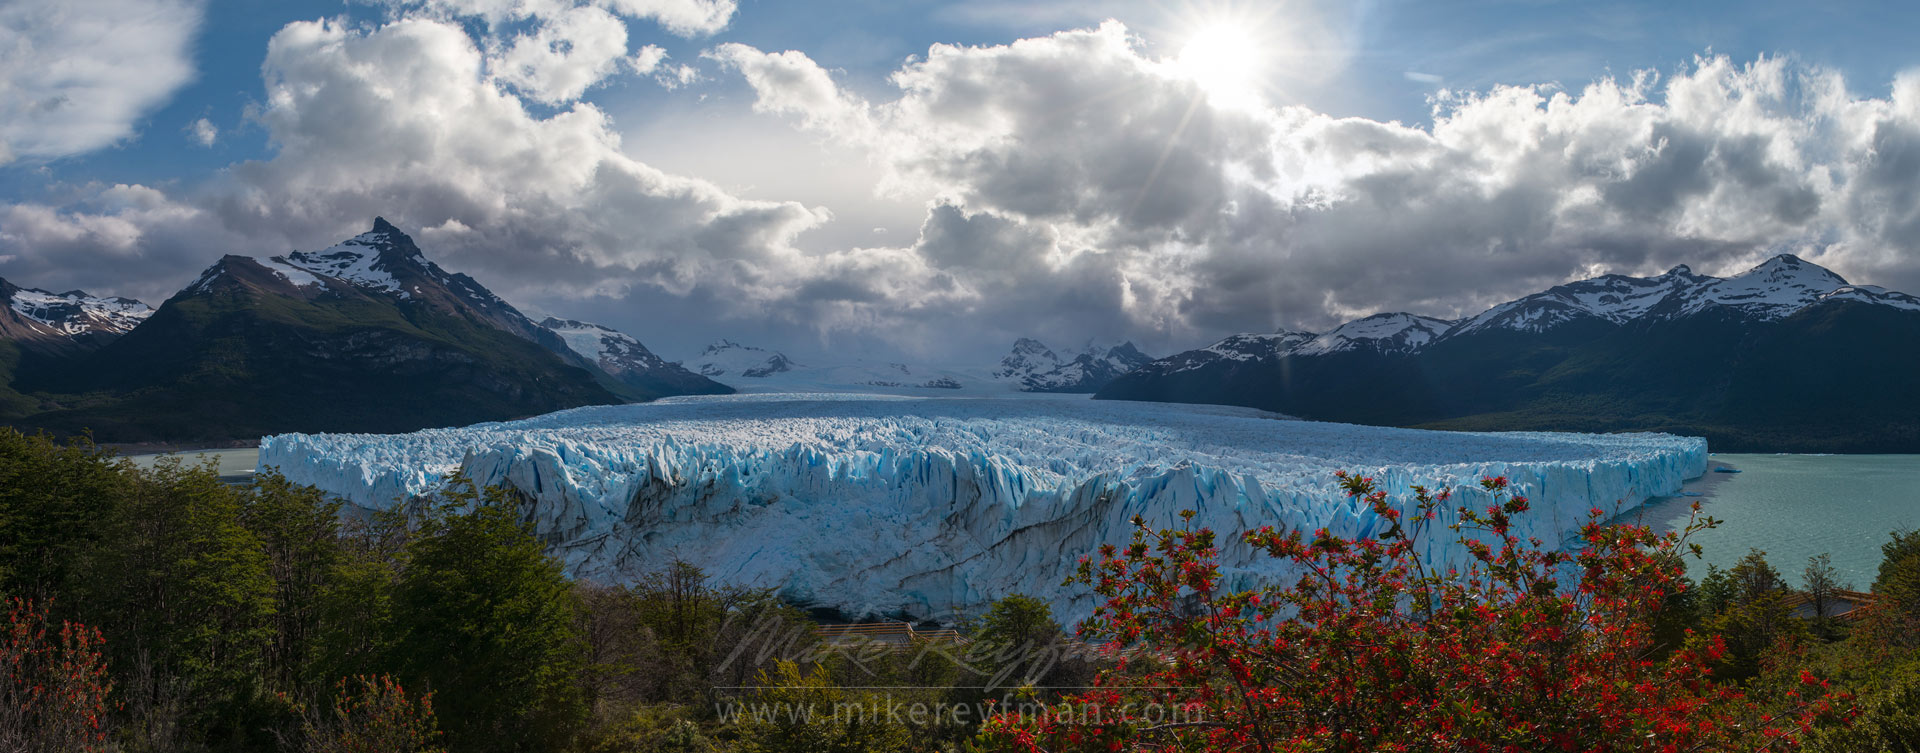 Panoramic view of Perito Moreno Glacier with Fire Bush on foreground. December 2013. Lago Argentino, Los Glaciares National Park, Patagonia, Argentina. - Fitzroy-Cerro-Torre-Perito-Moreno-Patagonia-Argentina - Mike Reyfman Photography